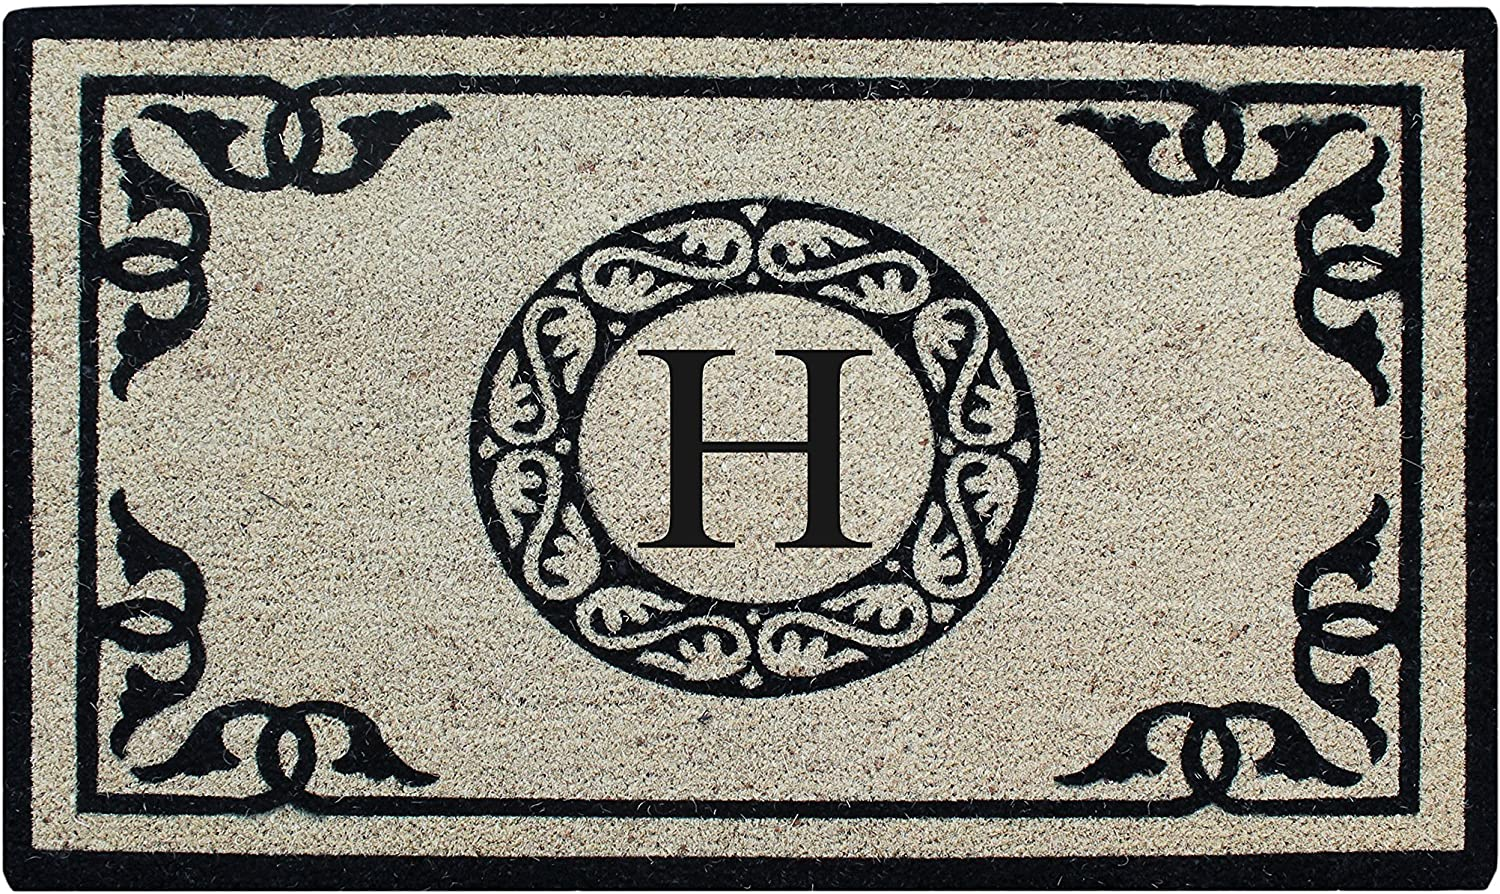 A1 Home Collections PT3006-1-H First Impression Hand Crafted by Artisans Bleach Printed Monogrammed Doormat, 24 X36